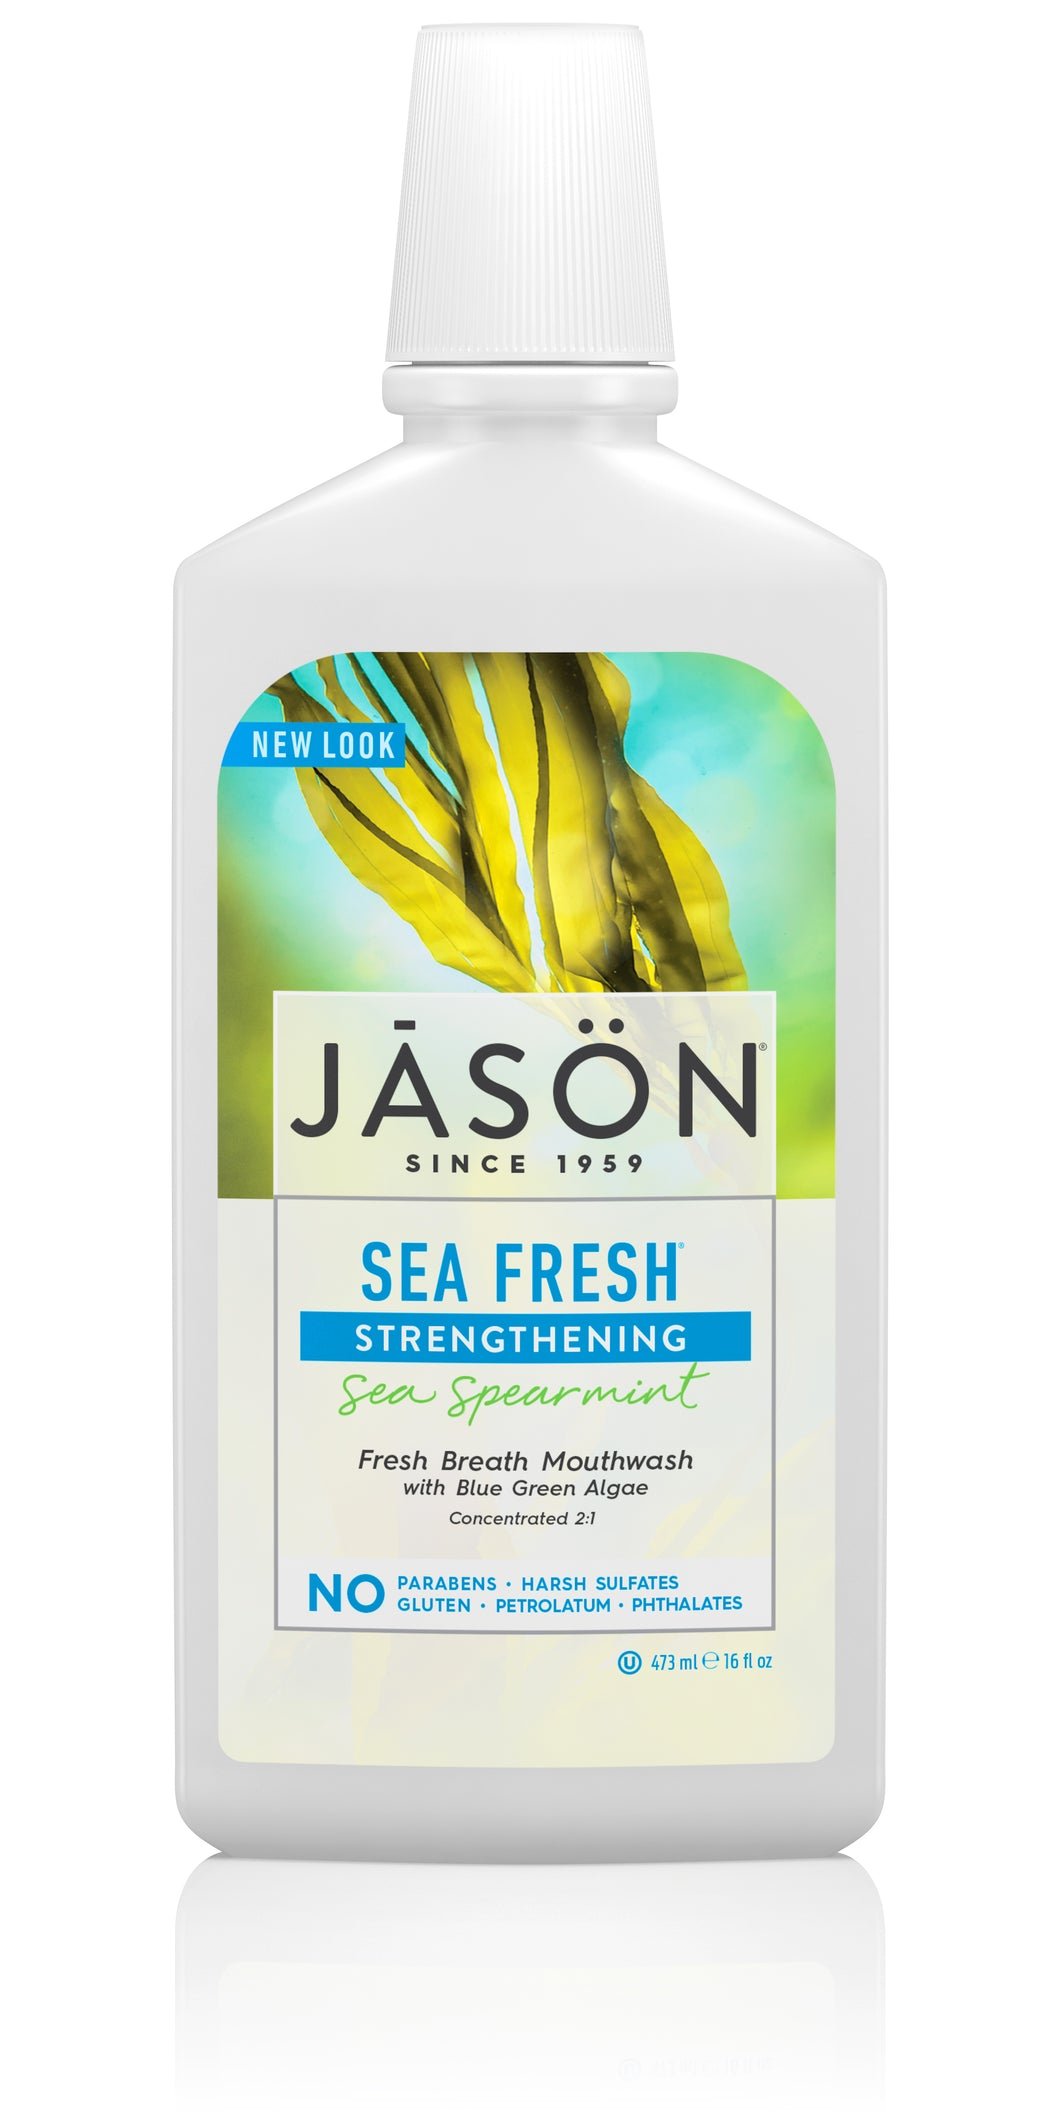 Sea fresh® Strengthening Sea Spearmint Fresh Breath Mouthwash